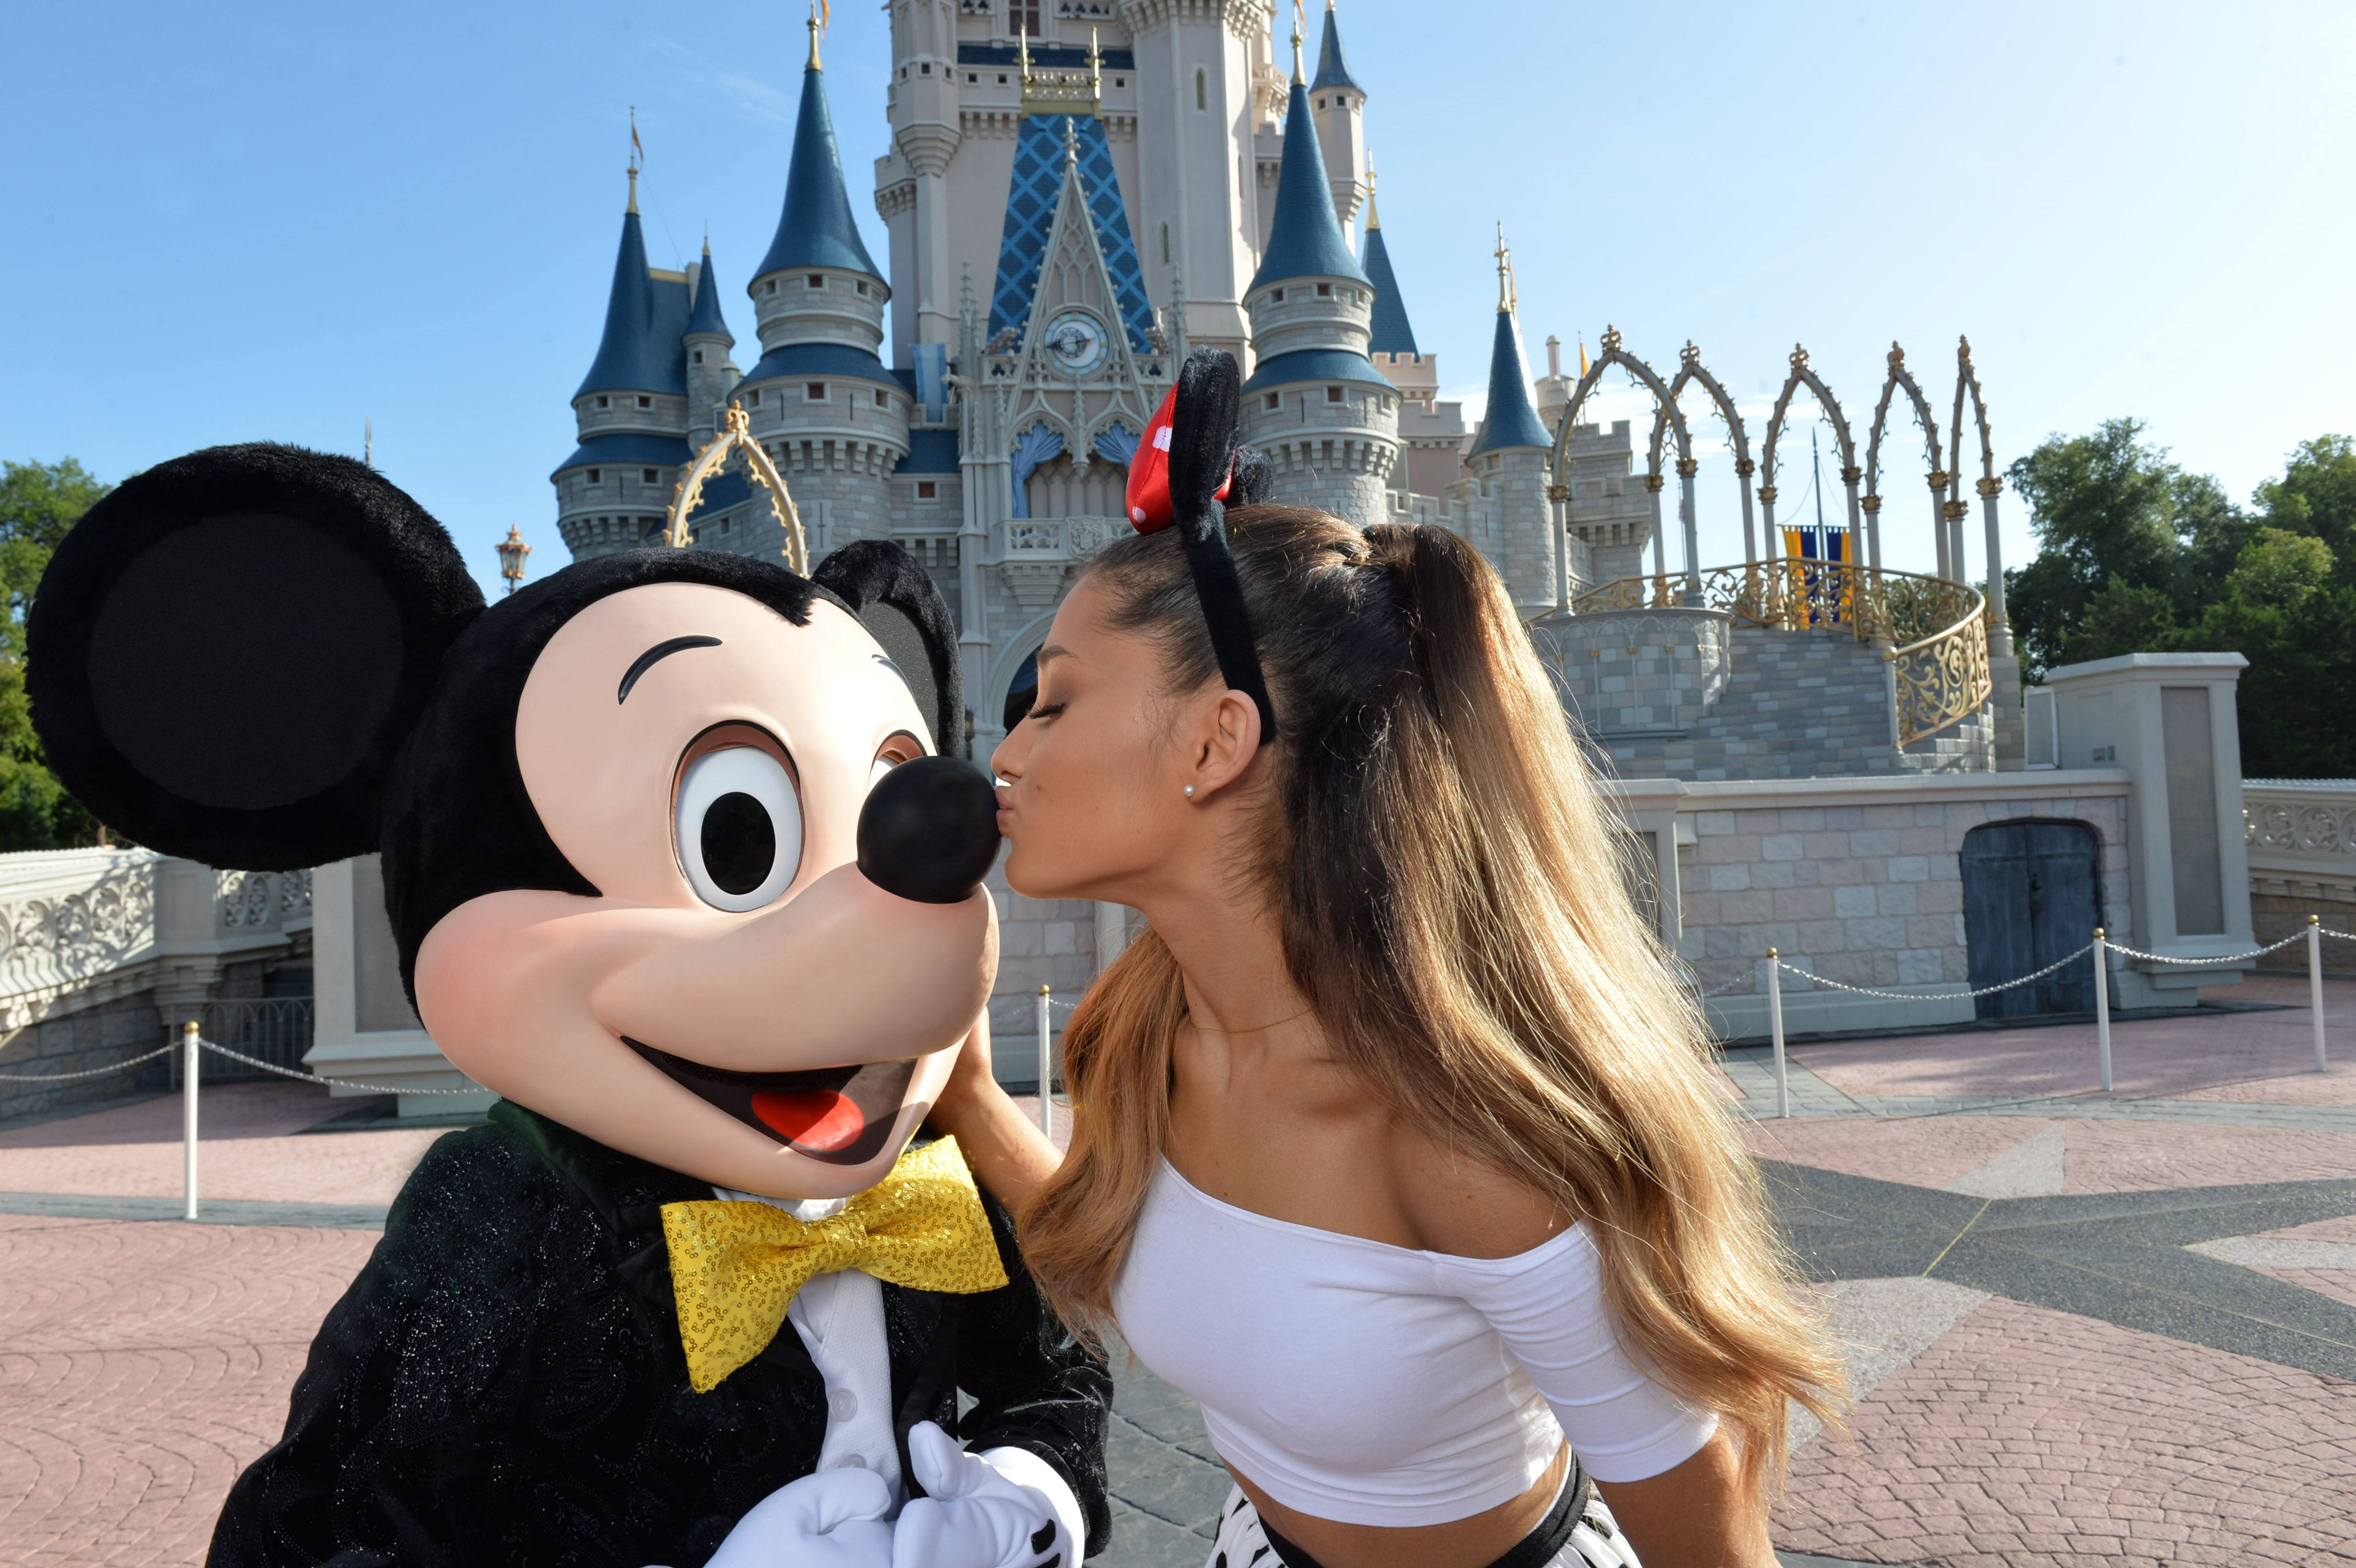 Ariana Grande at Disney